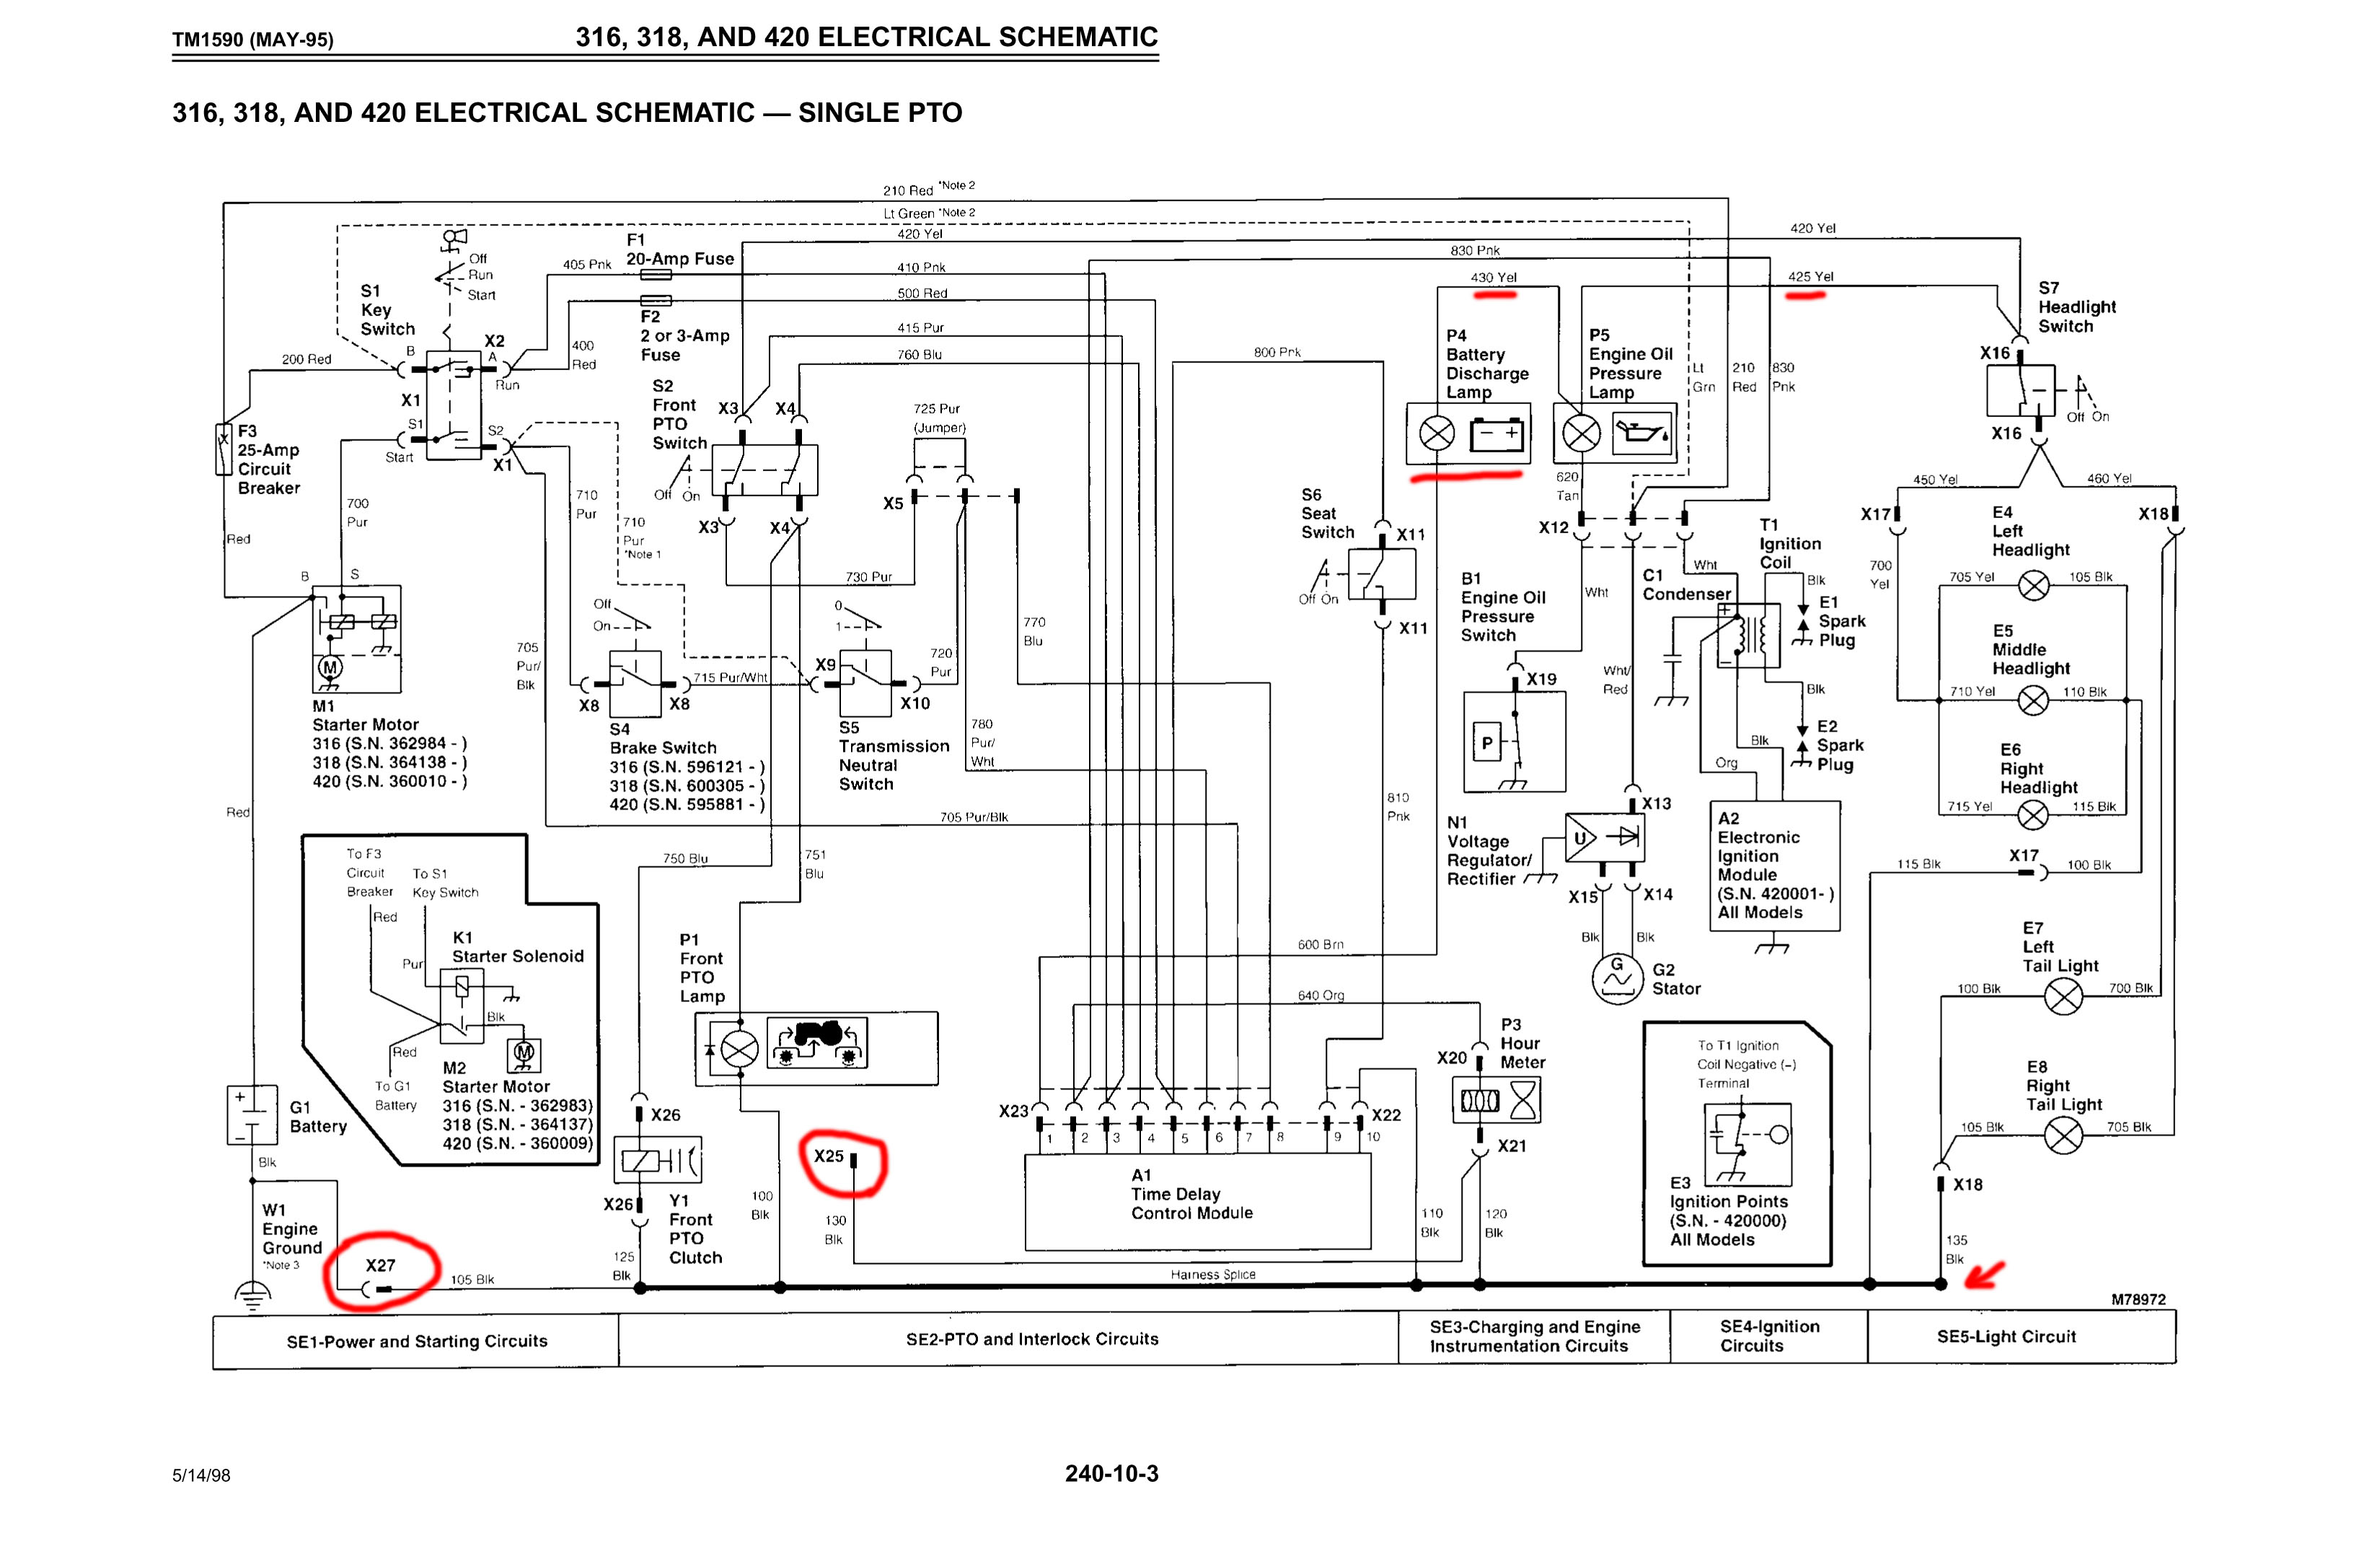 wiring diagram 2305 john deere wiring diagram and schematic john deere snow wiring diagram attachts diagrams